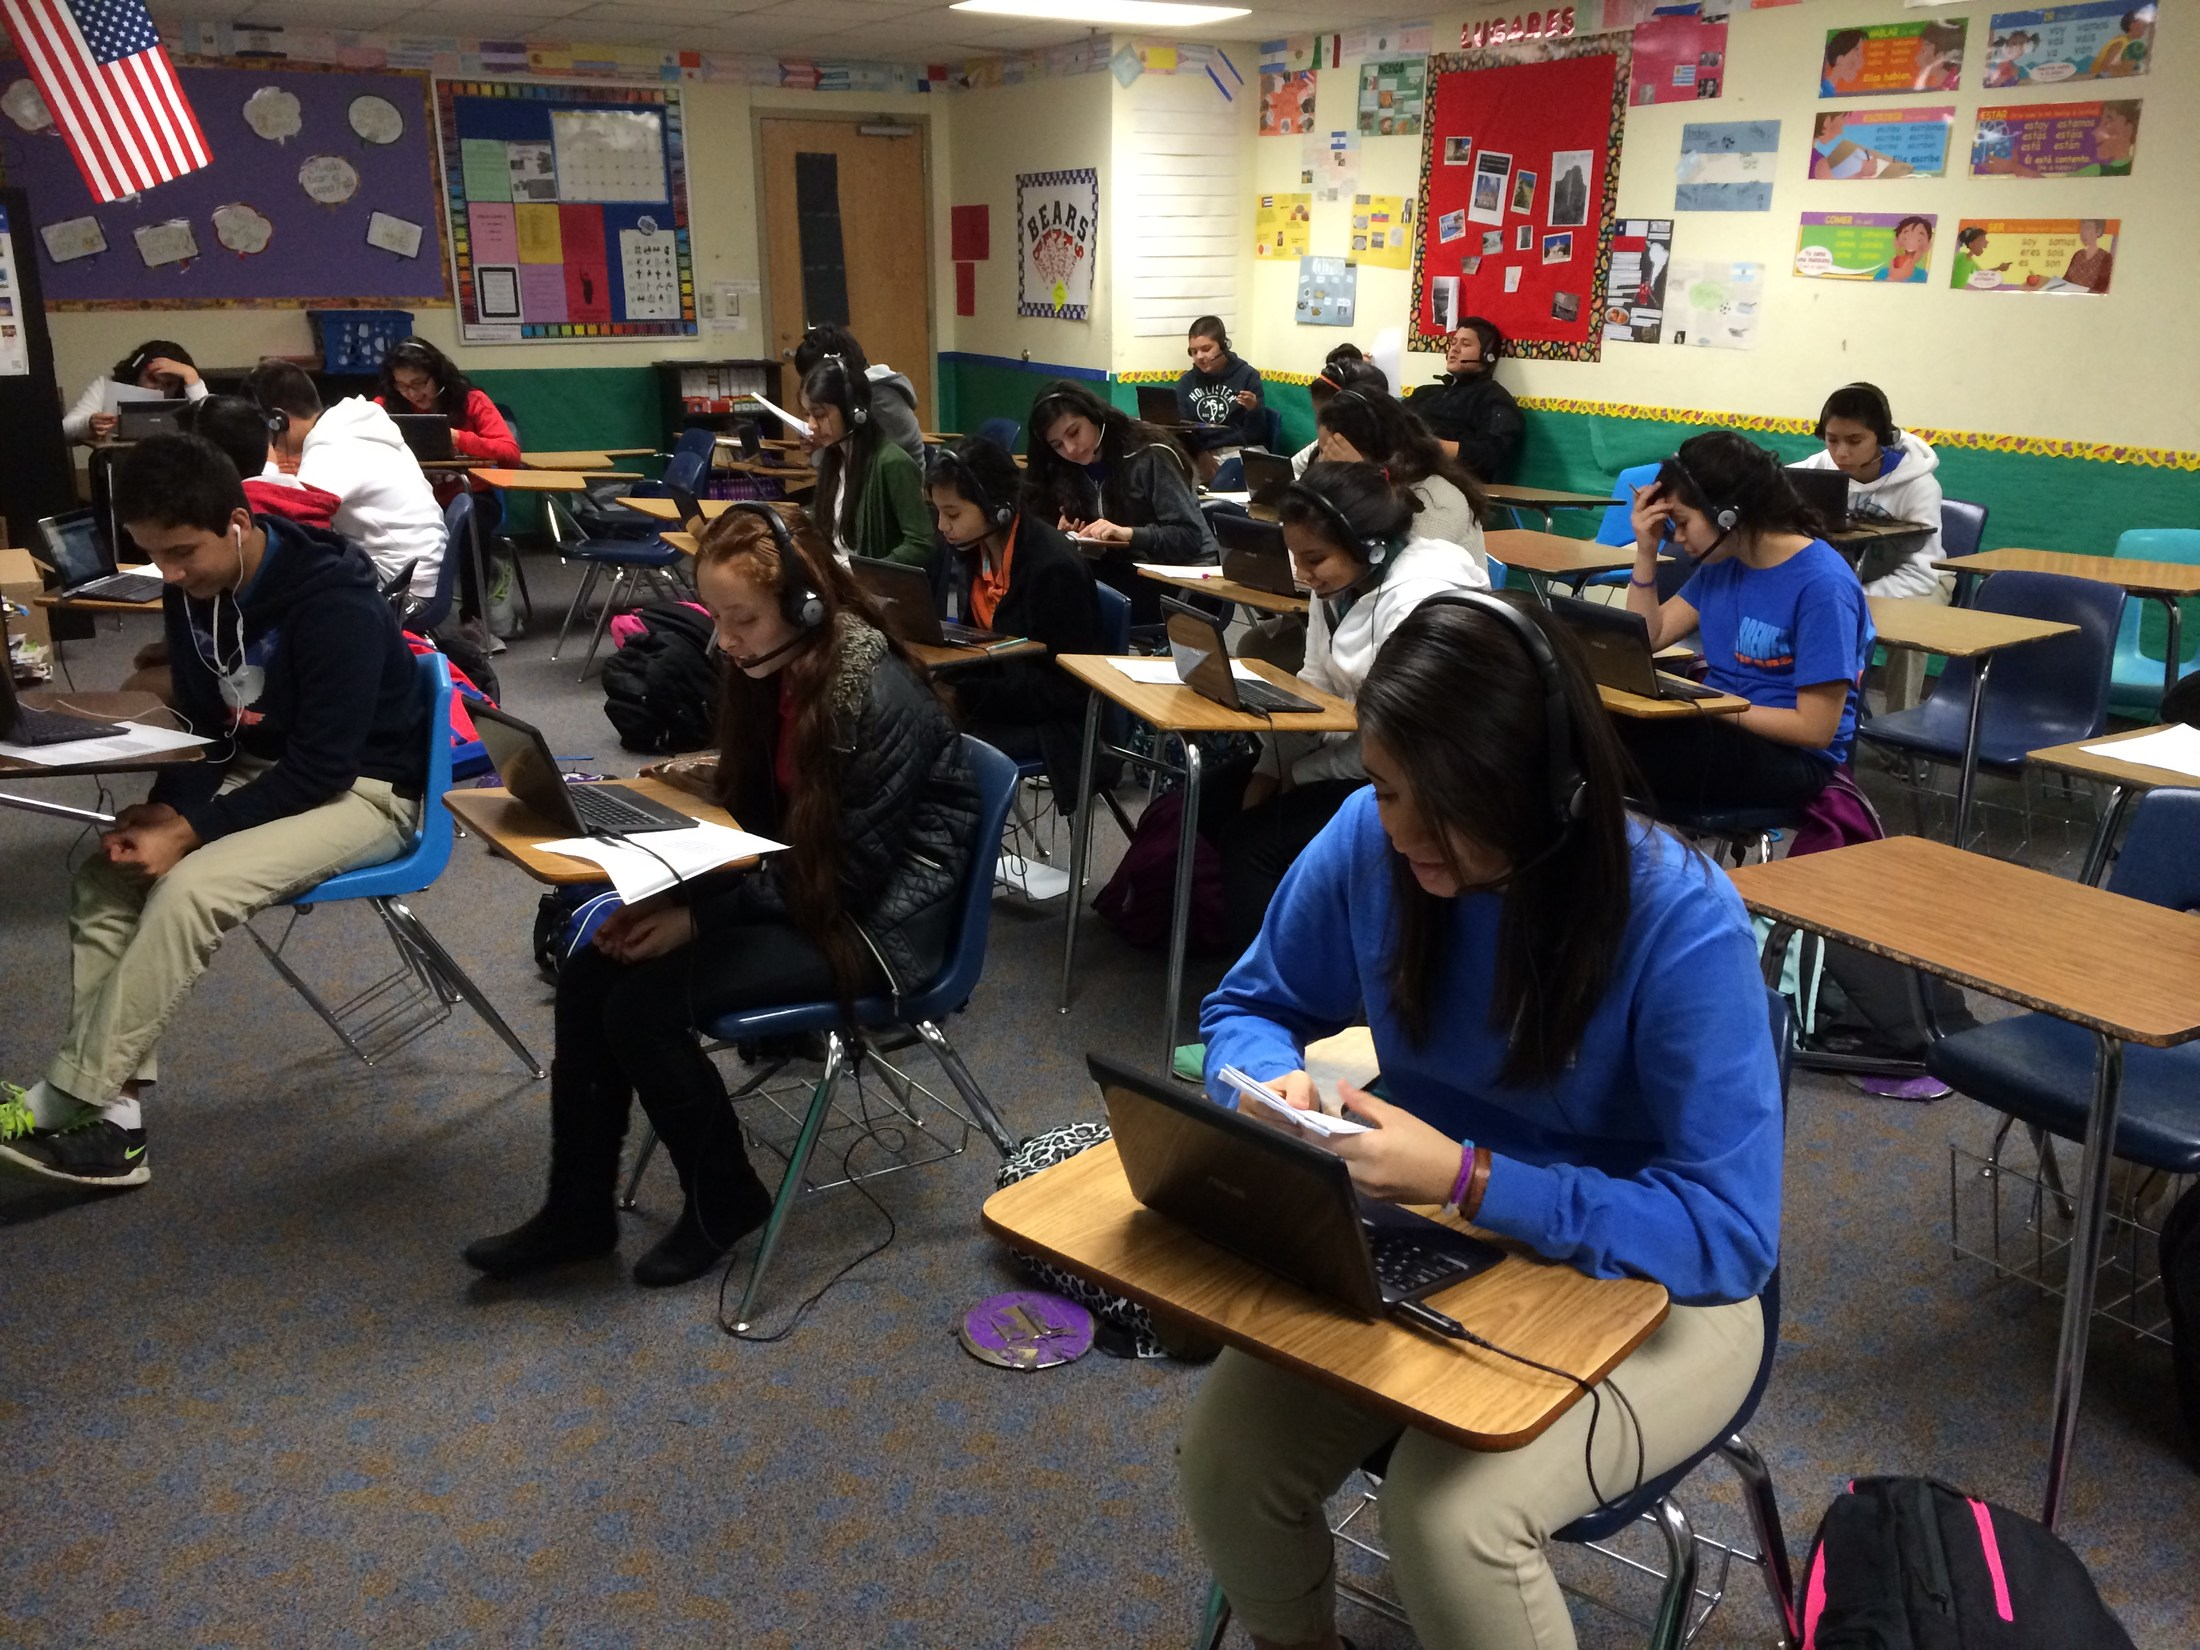 Students working on devices in the classroom